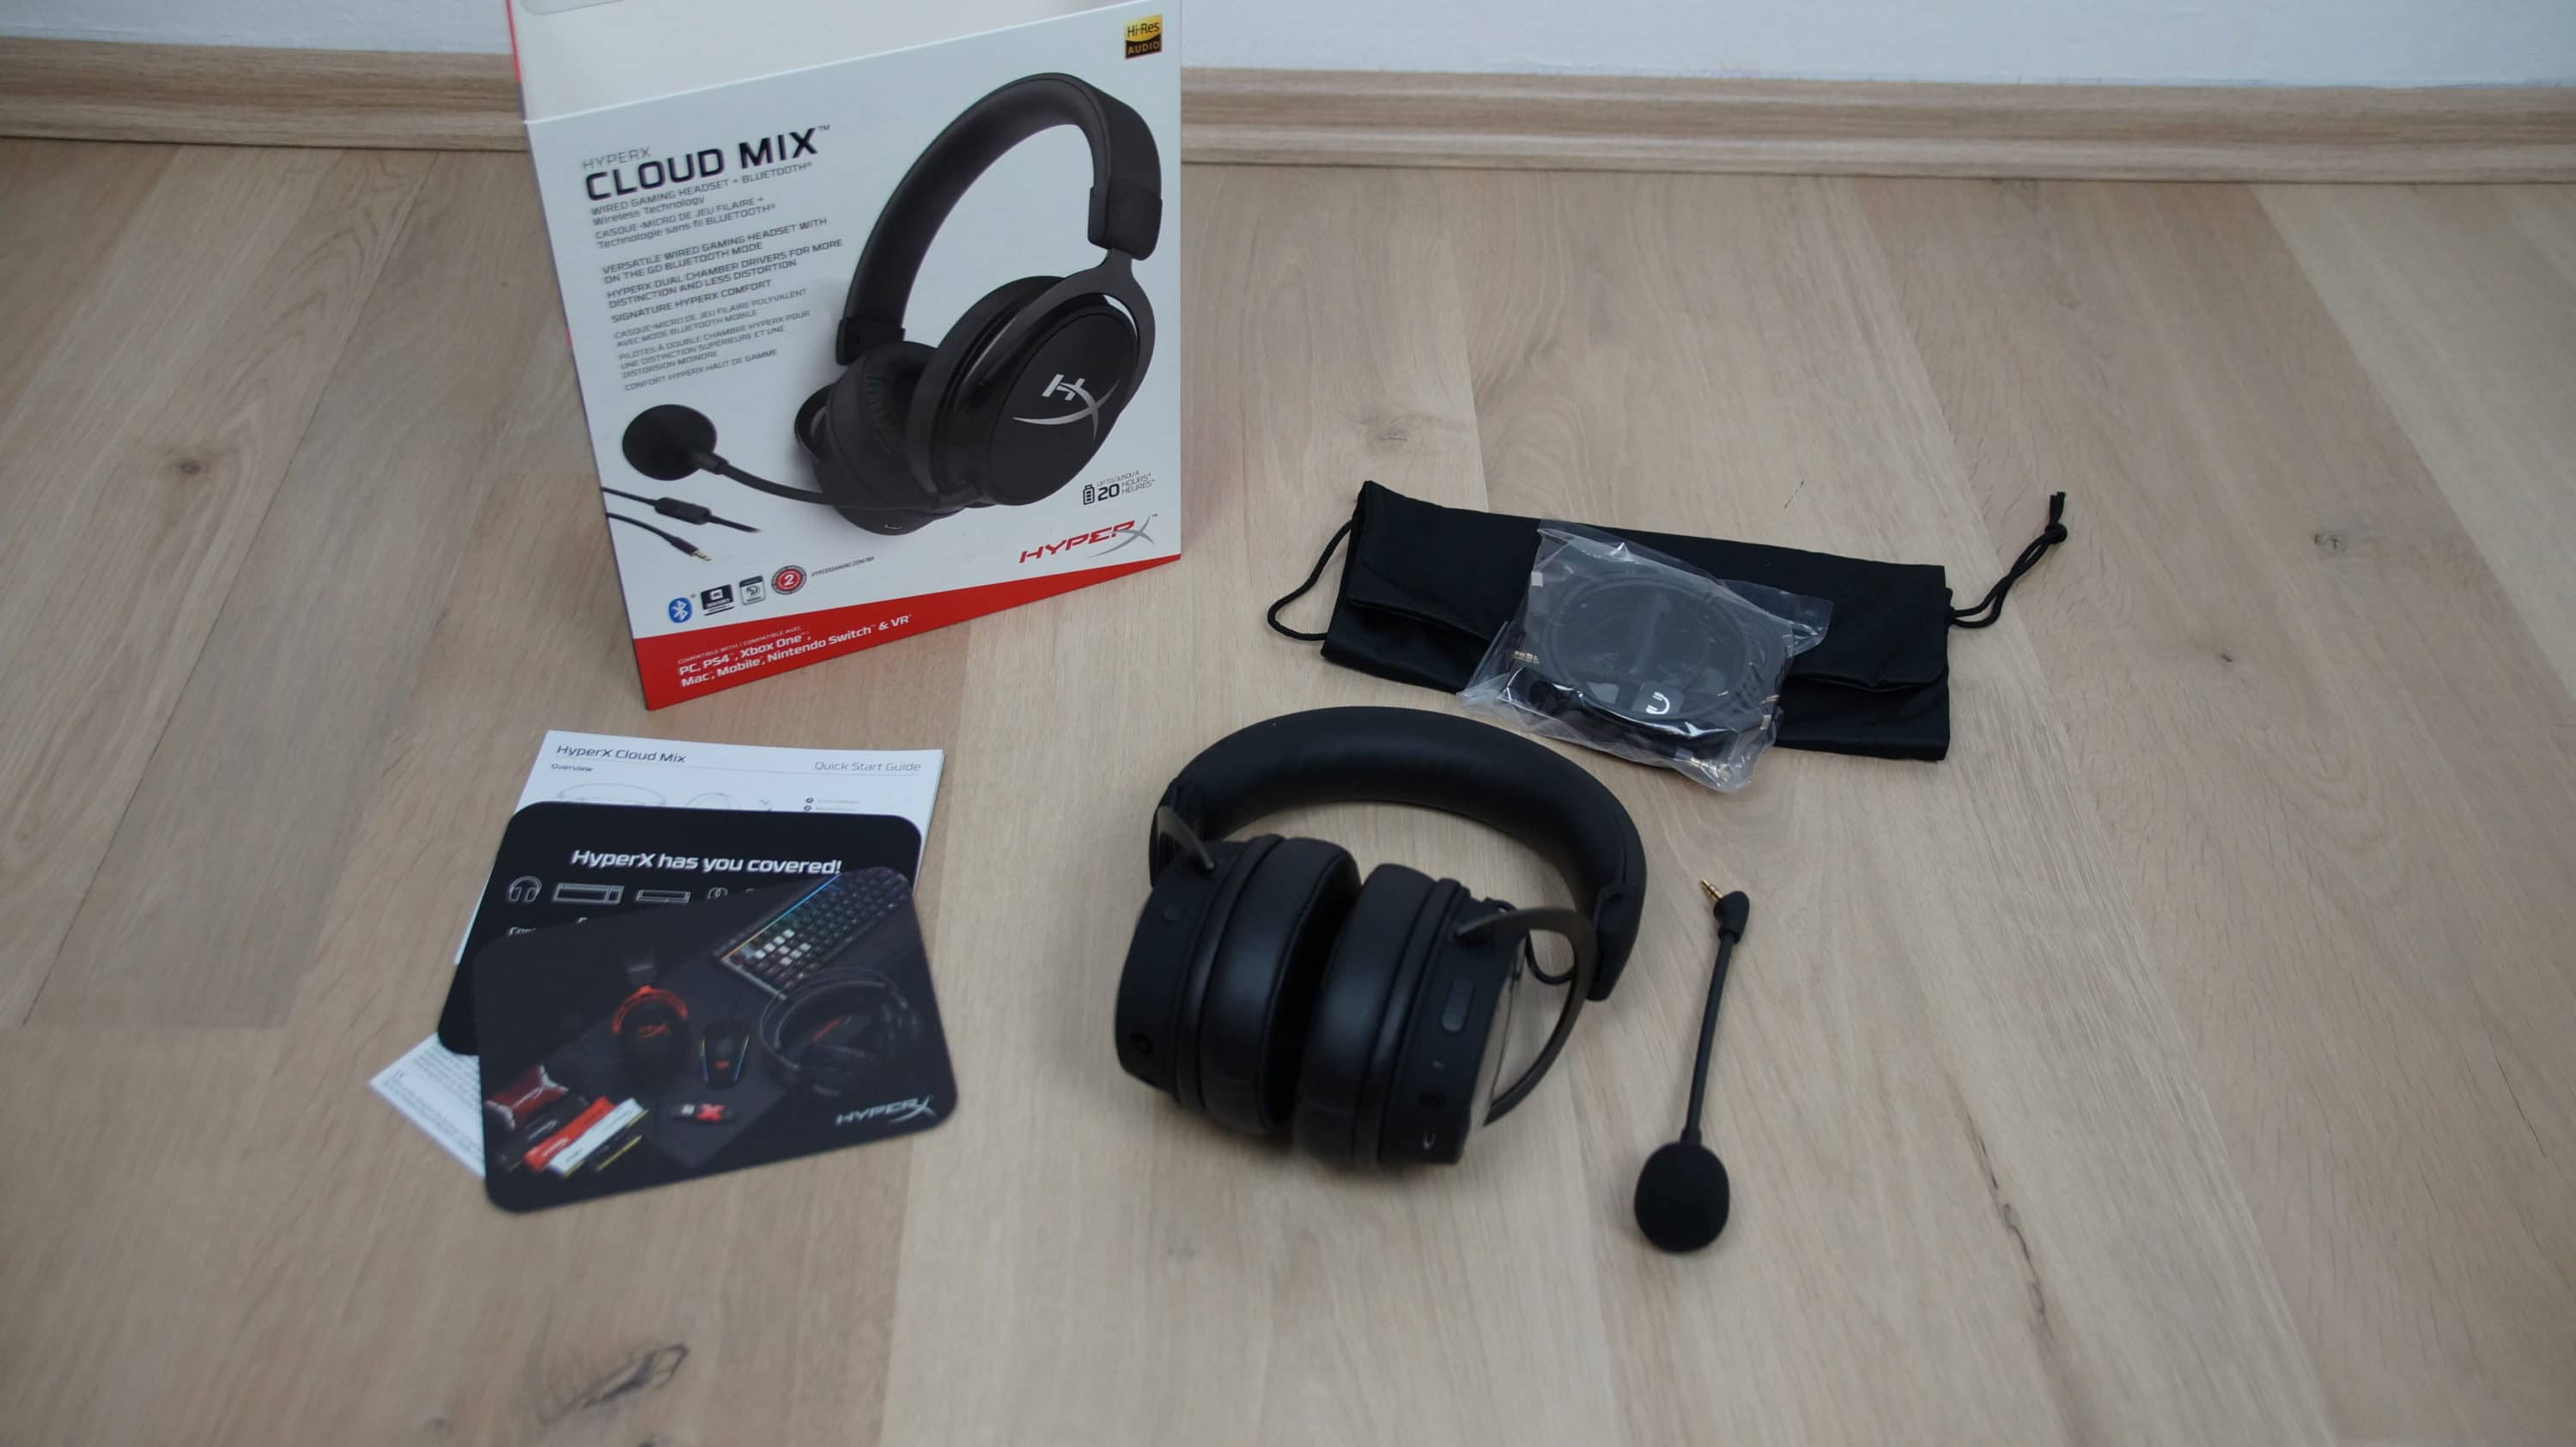 Review Of The Hyperx Cloud Mix Gaming Headset